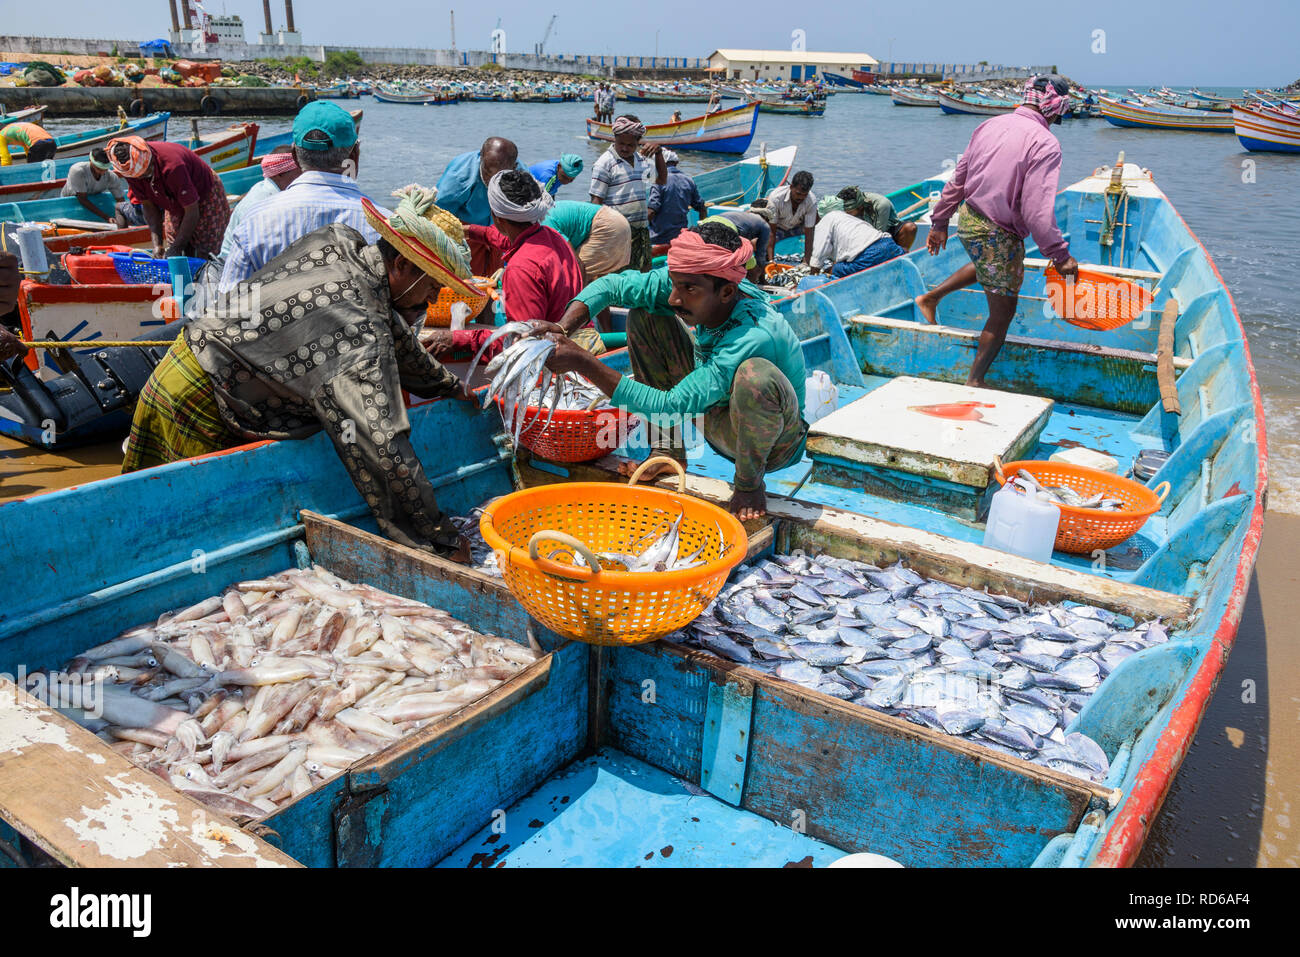 Vizhinjam beach fish market, near Kovalam, Kerala, India - Stock Image